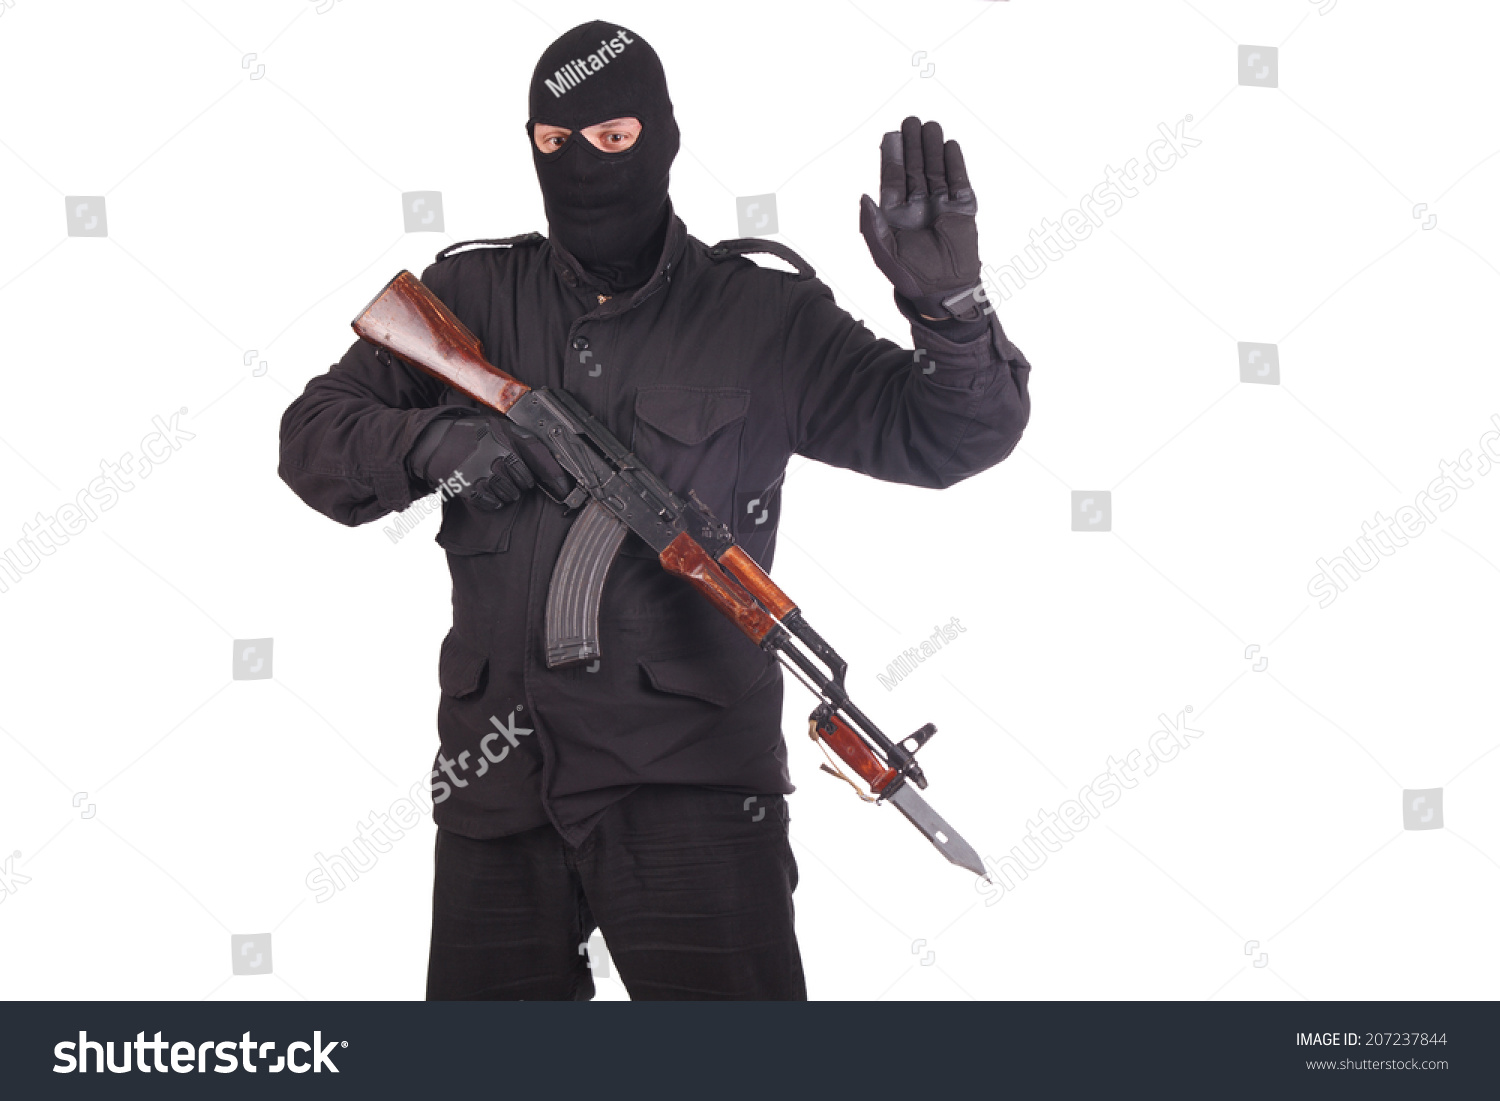 Mercenary With AK 47 Gun Witn Bayonet